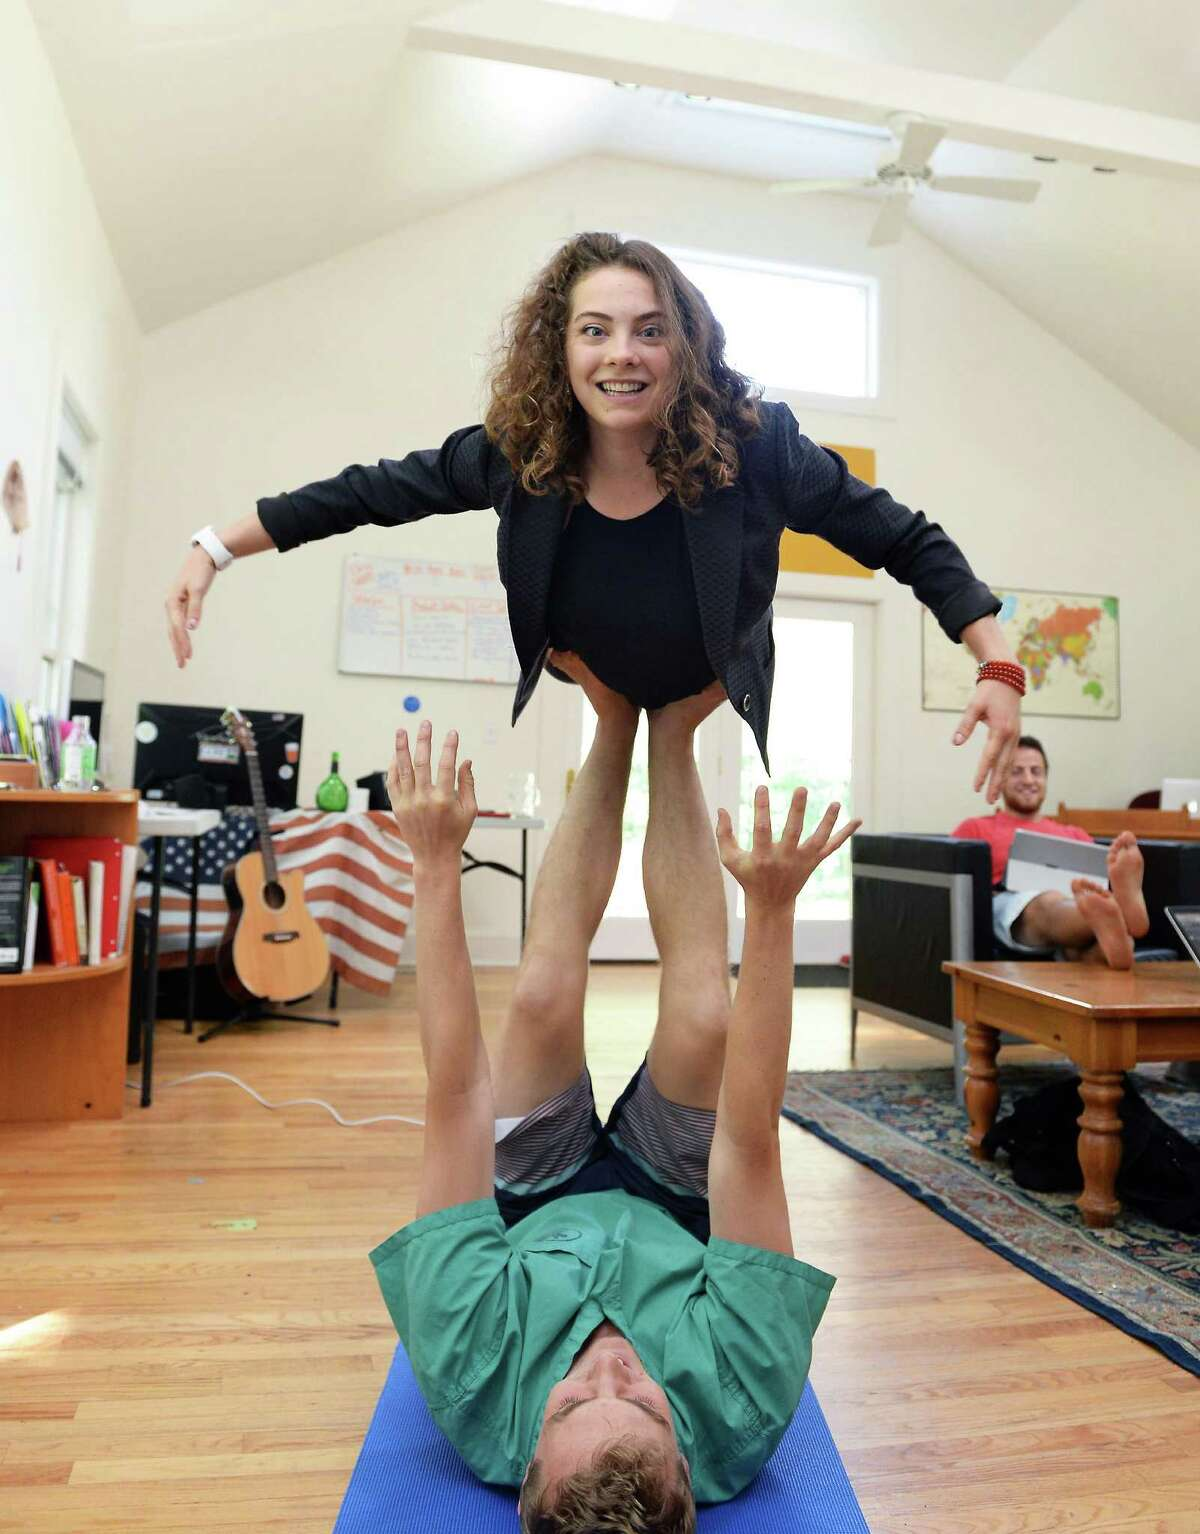 Ant Hill CEO Marcella Jewell ?flies? with the help of a coworker in the main office space of their Hacker House, where young entrepreneurs live and work. Jewell often uses yoga and gymnastics as part of her creative process. (John Carl D'Annibale / Times Union)